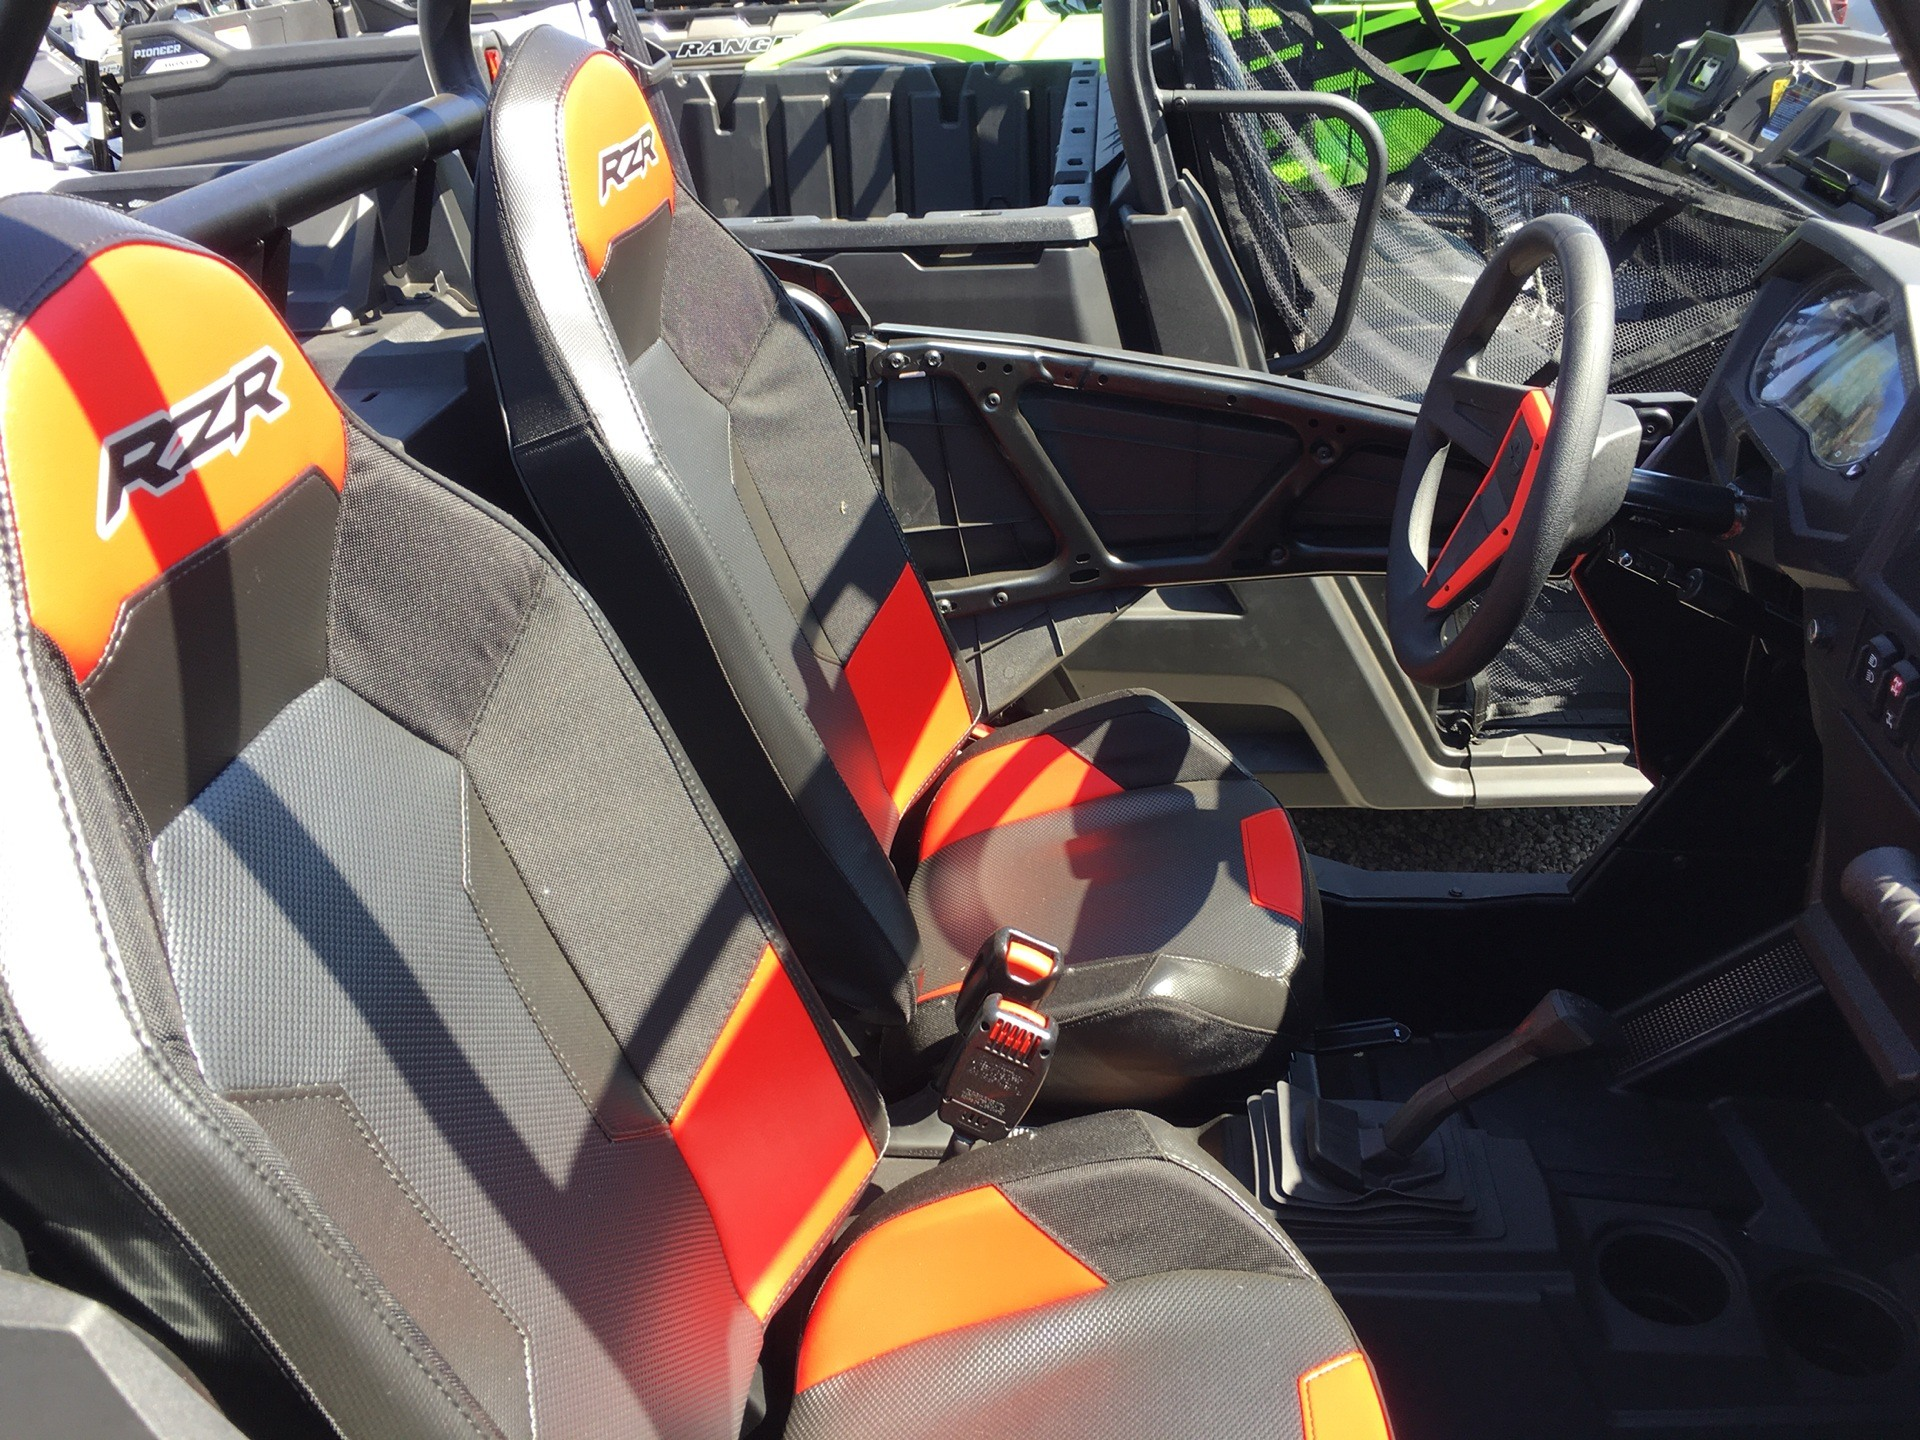 2020 Polaris RZR XP Turbo in Paso Robles, California - Photo 2